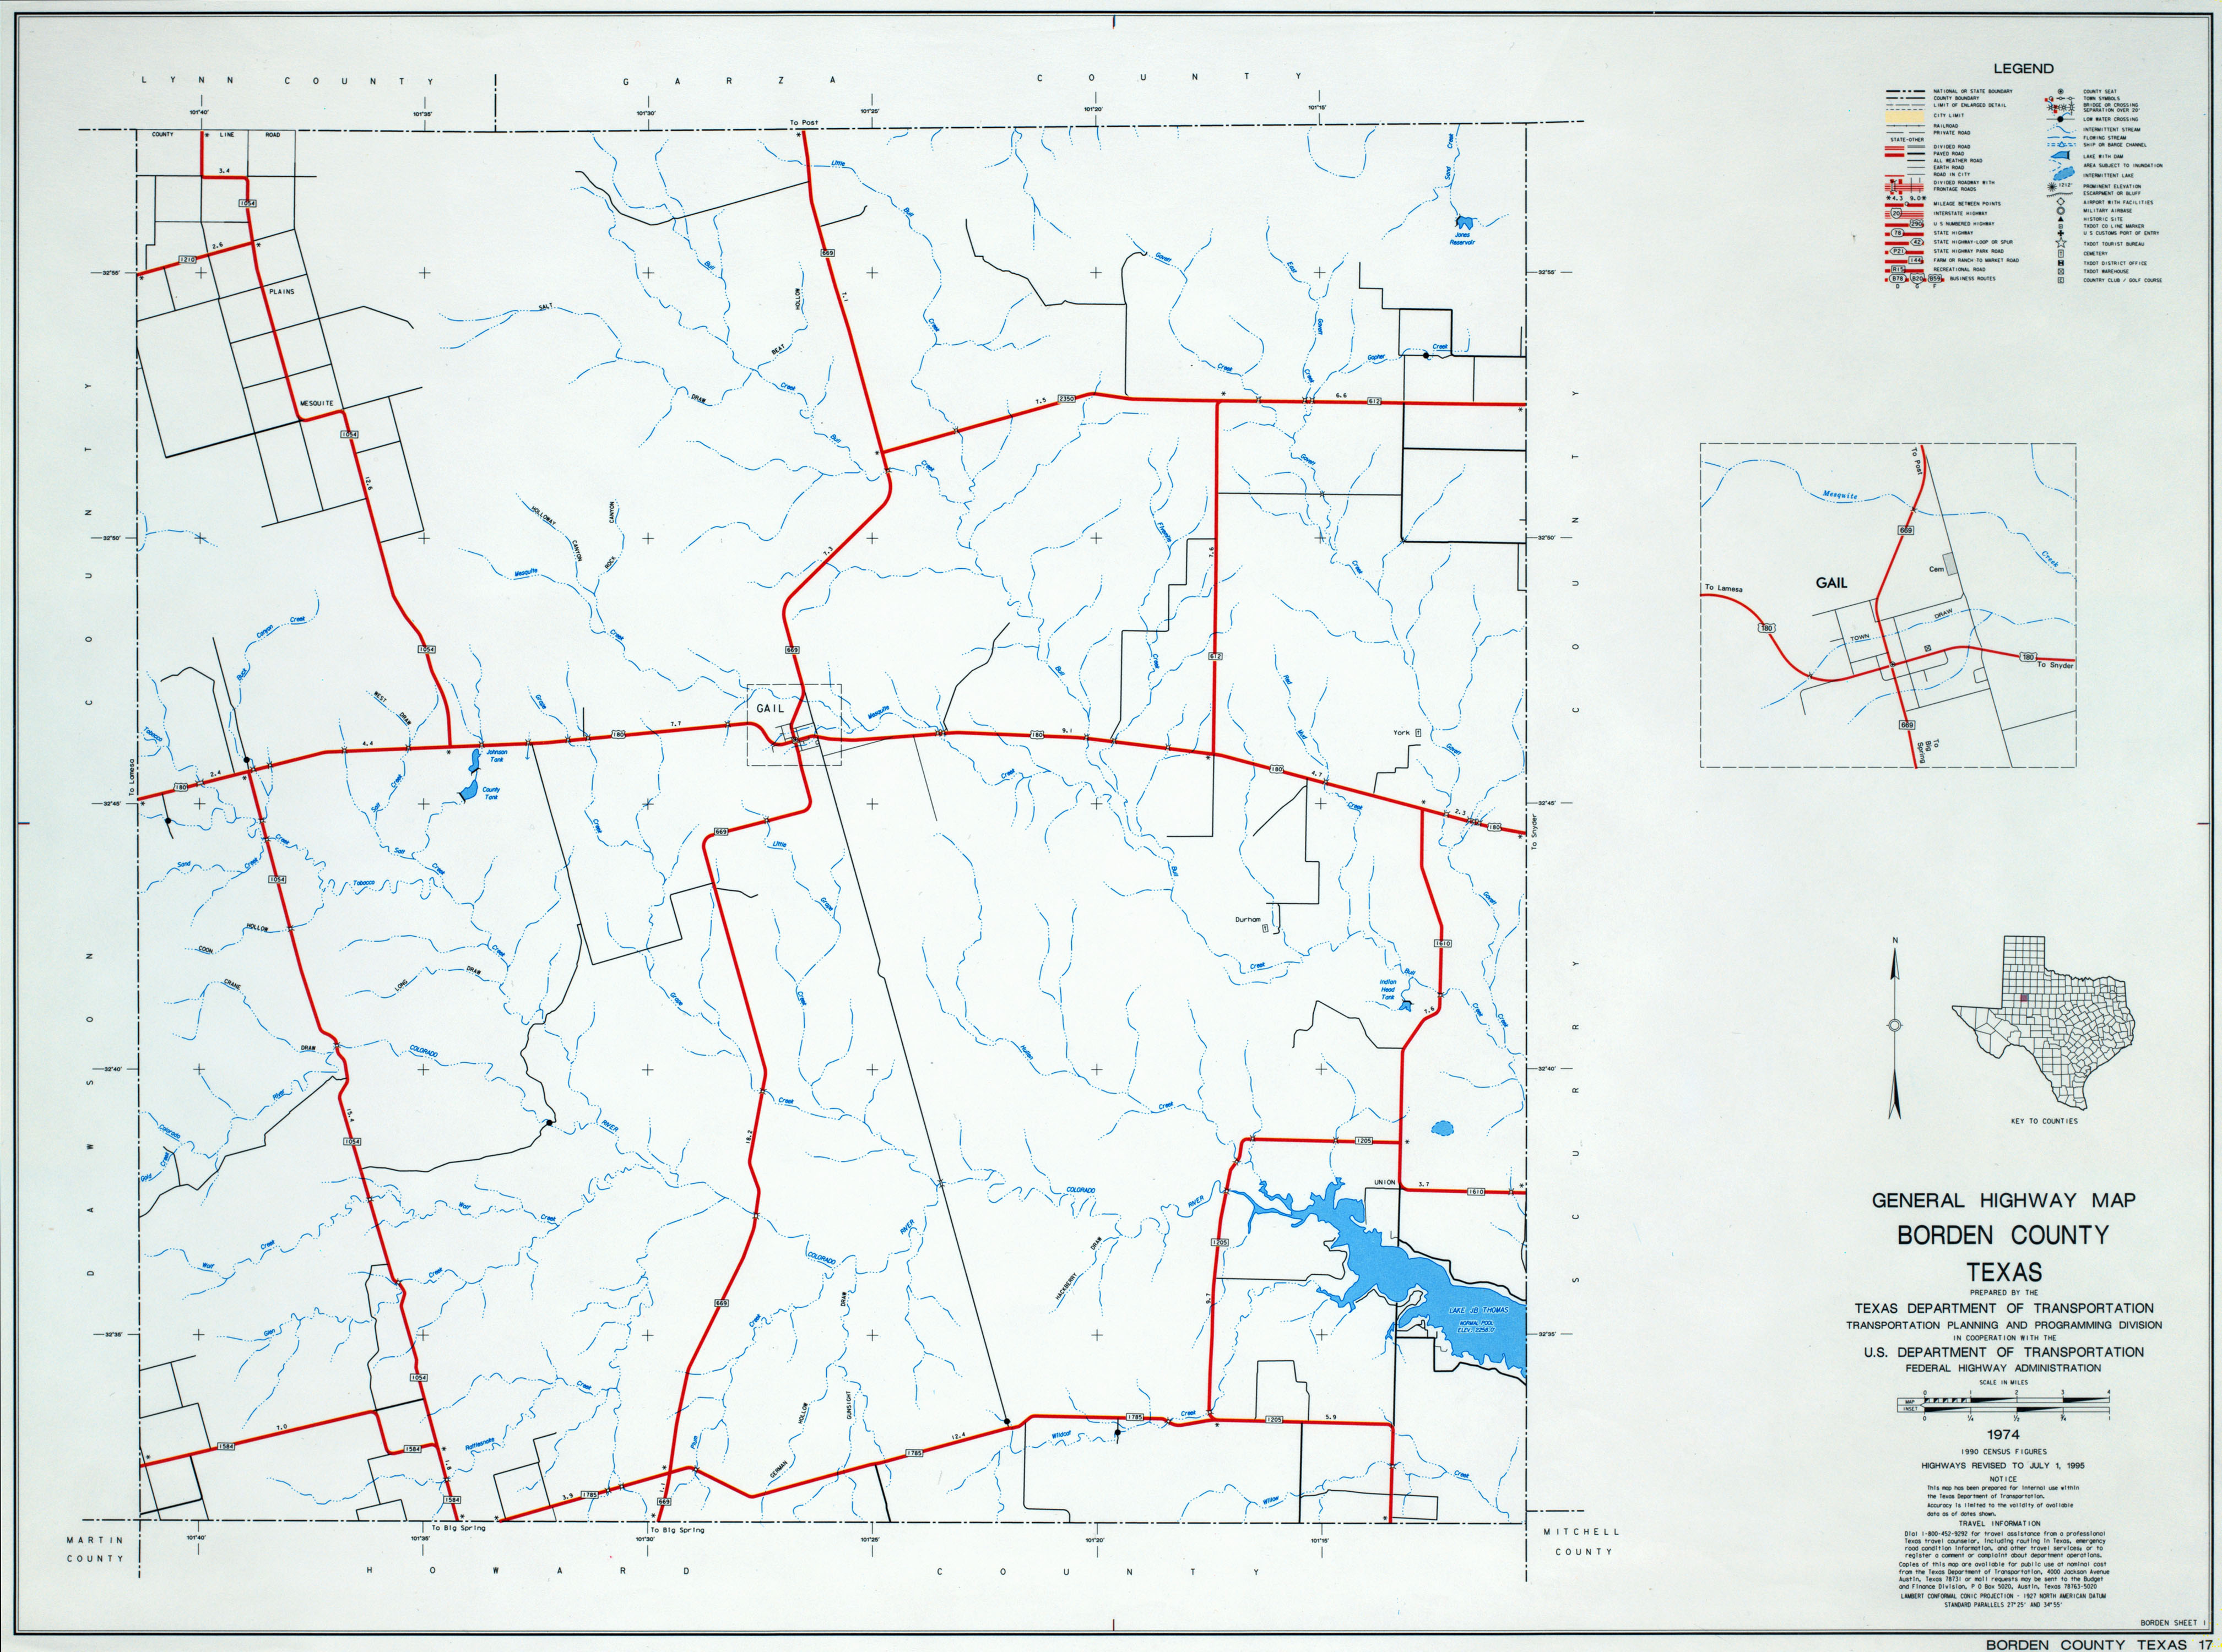 Texas County Highway Maps Browse - Perry-Castañeda Map Collection ...